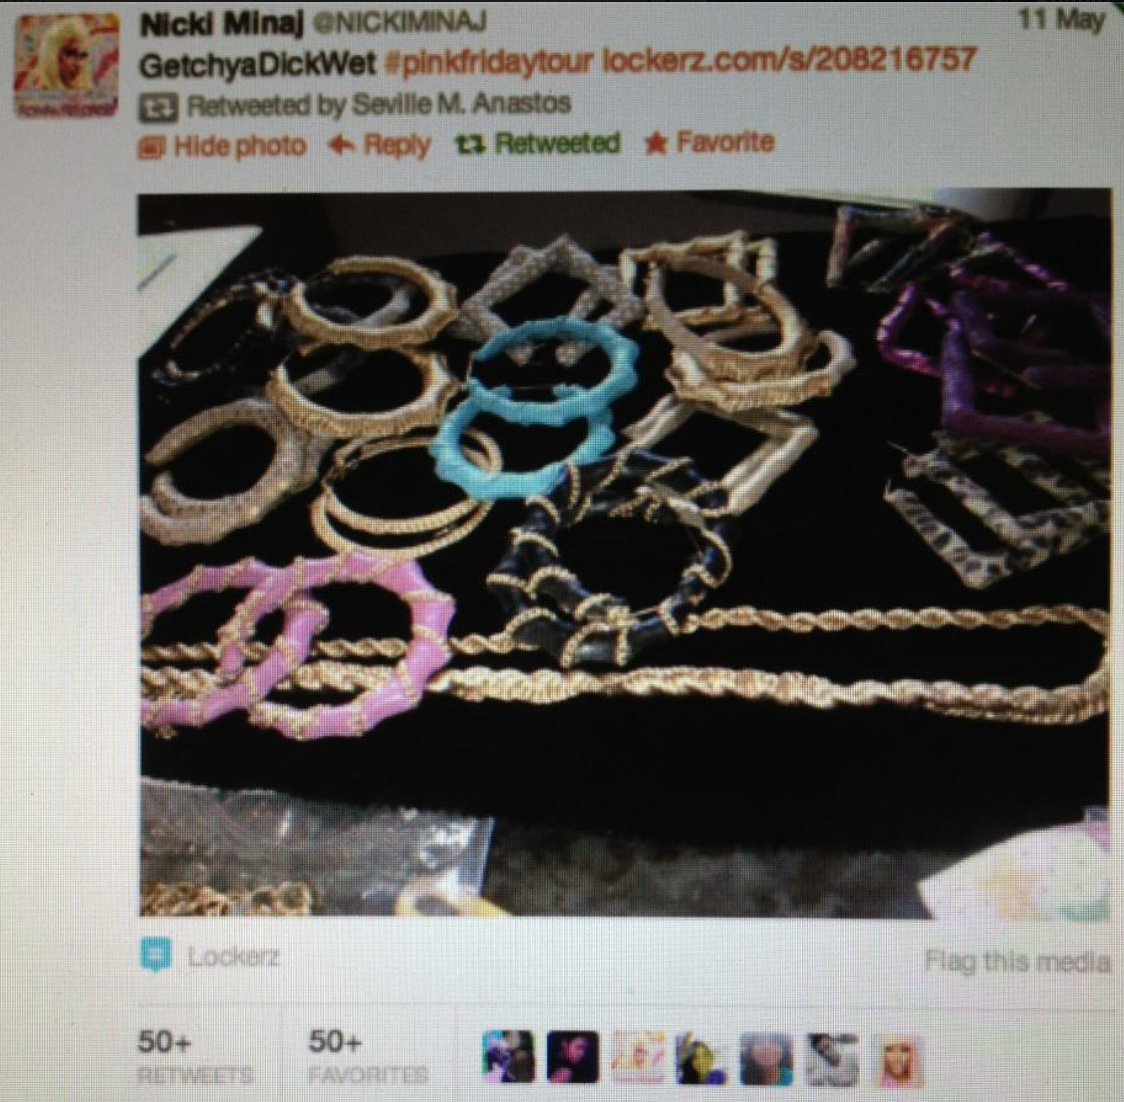 Nicki Minaj posts her Pink Friday tour accessories.